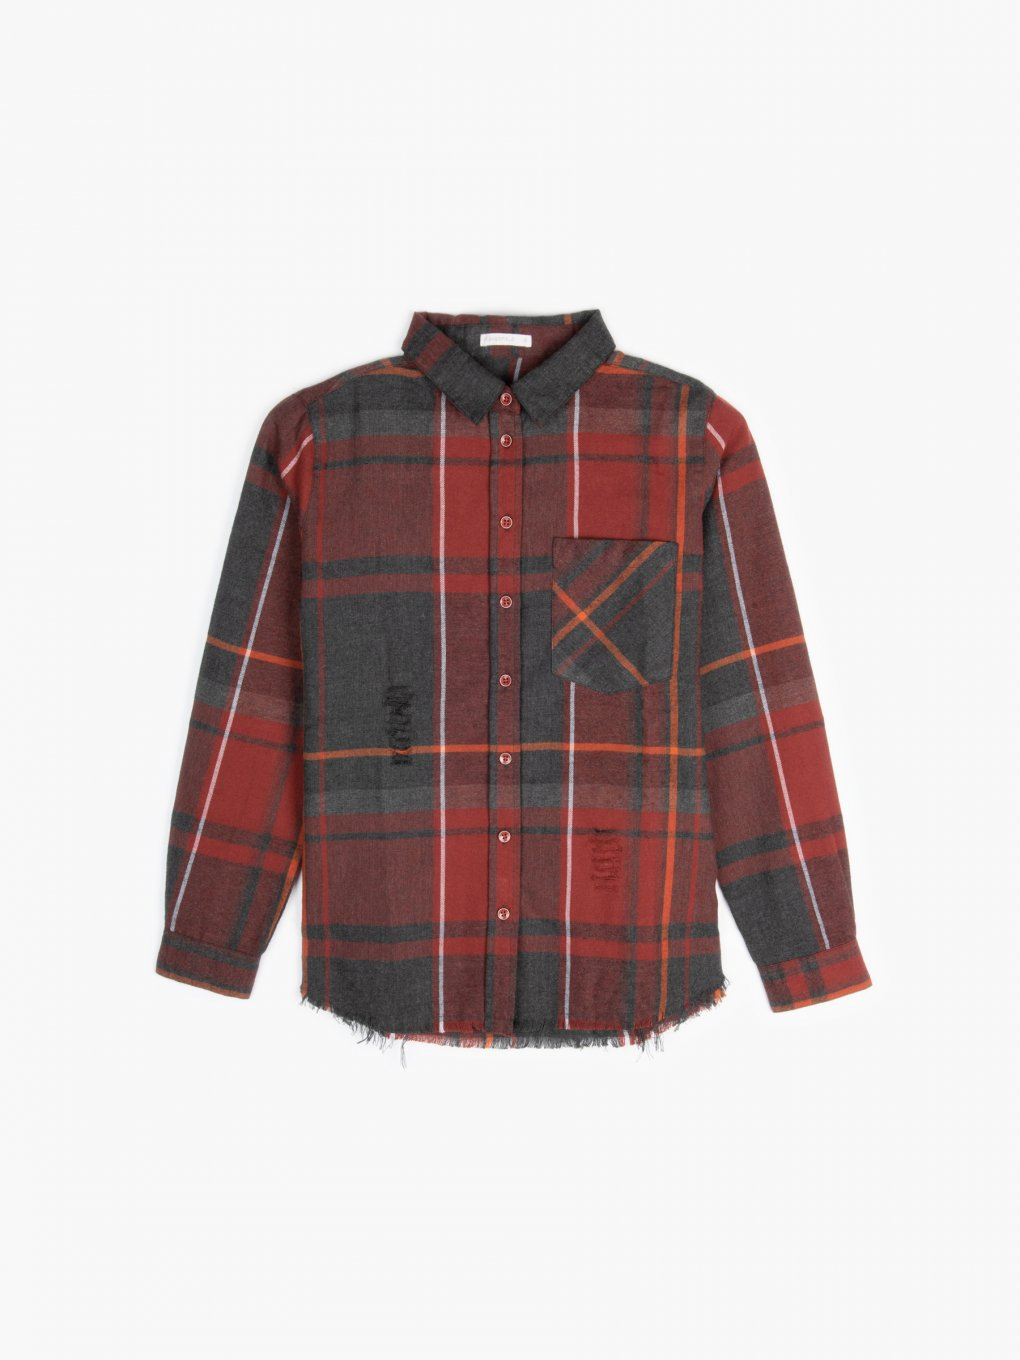 Plaid shirt with frayed edge